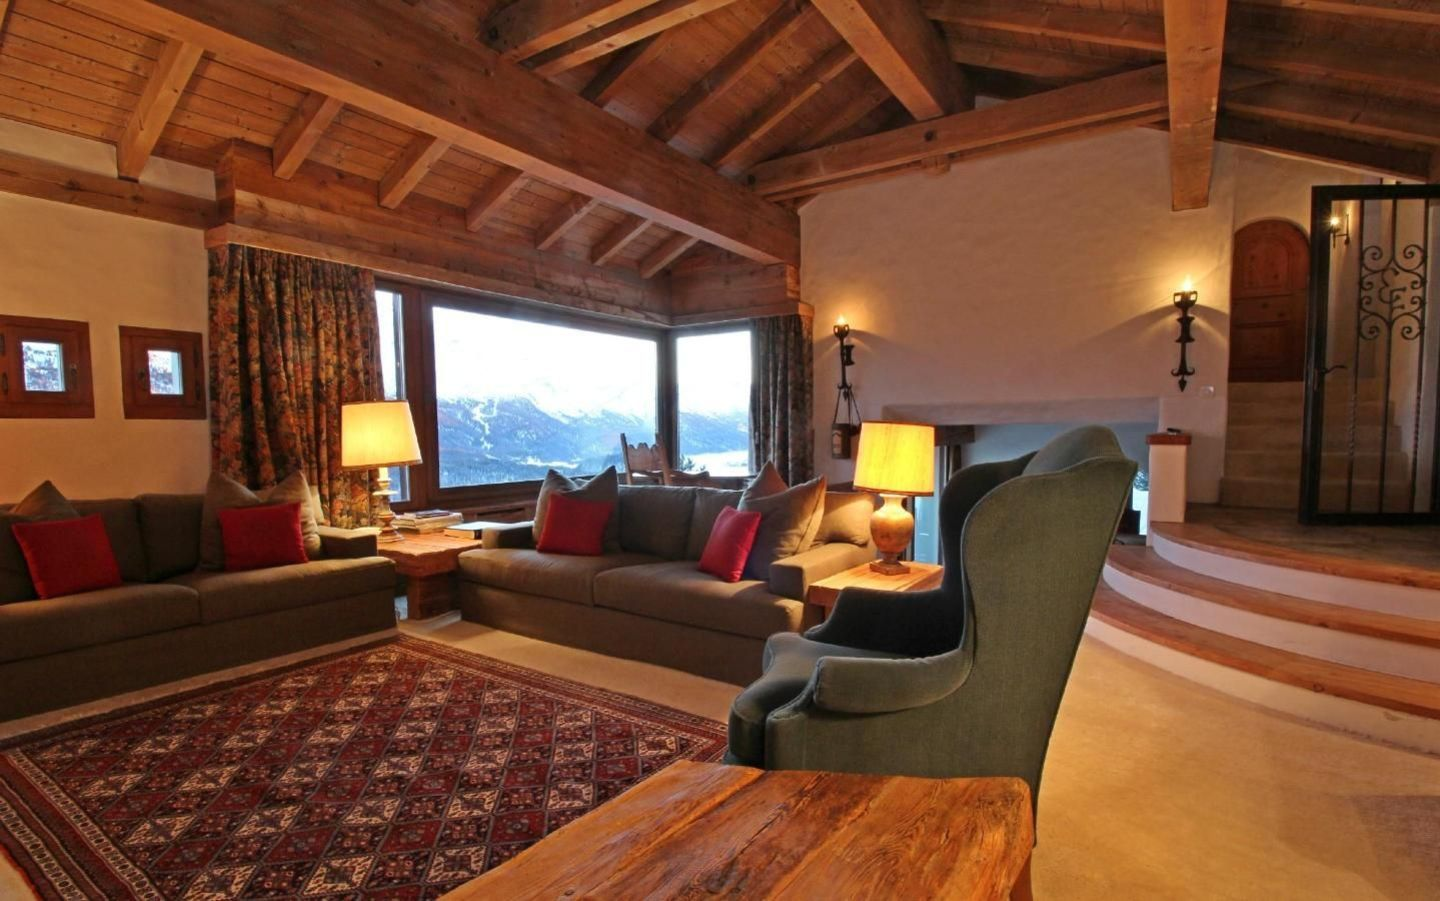 Villa in the exclusiv area of St.Moritz-Suvretta